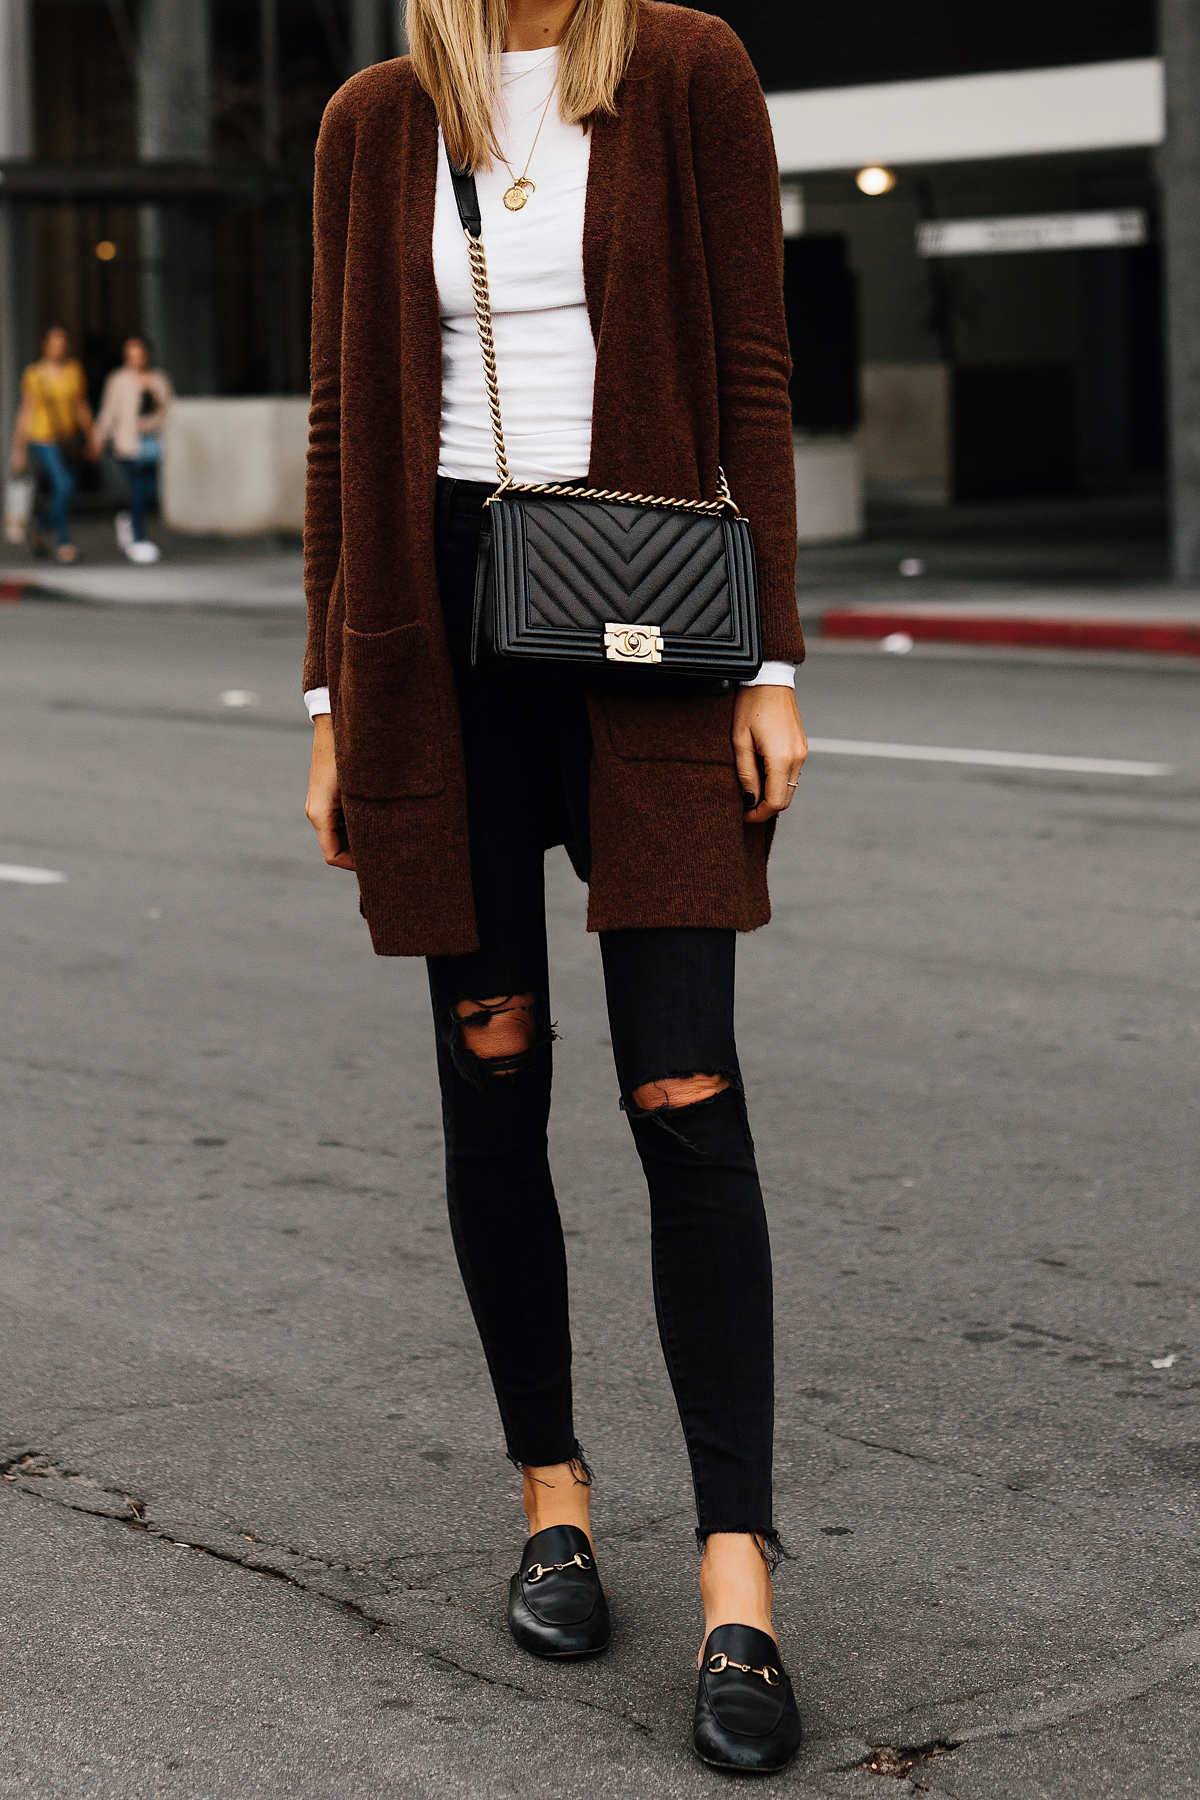 Woman Wearing Madewell Brown Long Cardigan White Top Madewell Black Ripped Skinny Jeans Gucci Black Princetown Loafer Mules Chanel Black Boy Bag Fashion Jackson San Diego Fashion Blogger Street Style